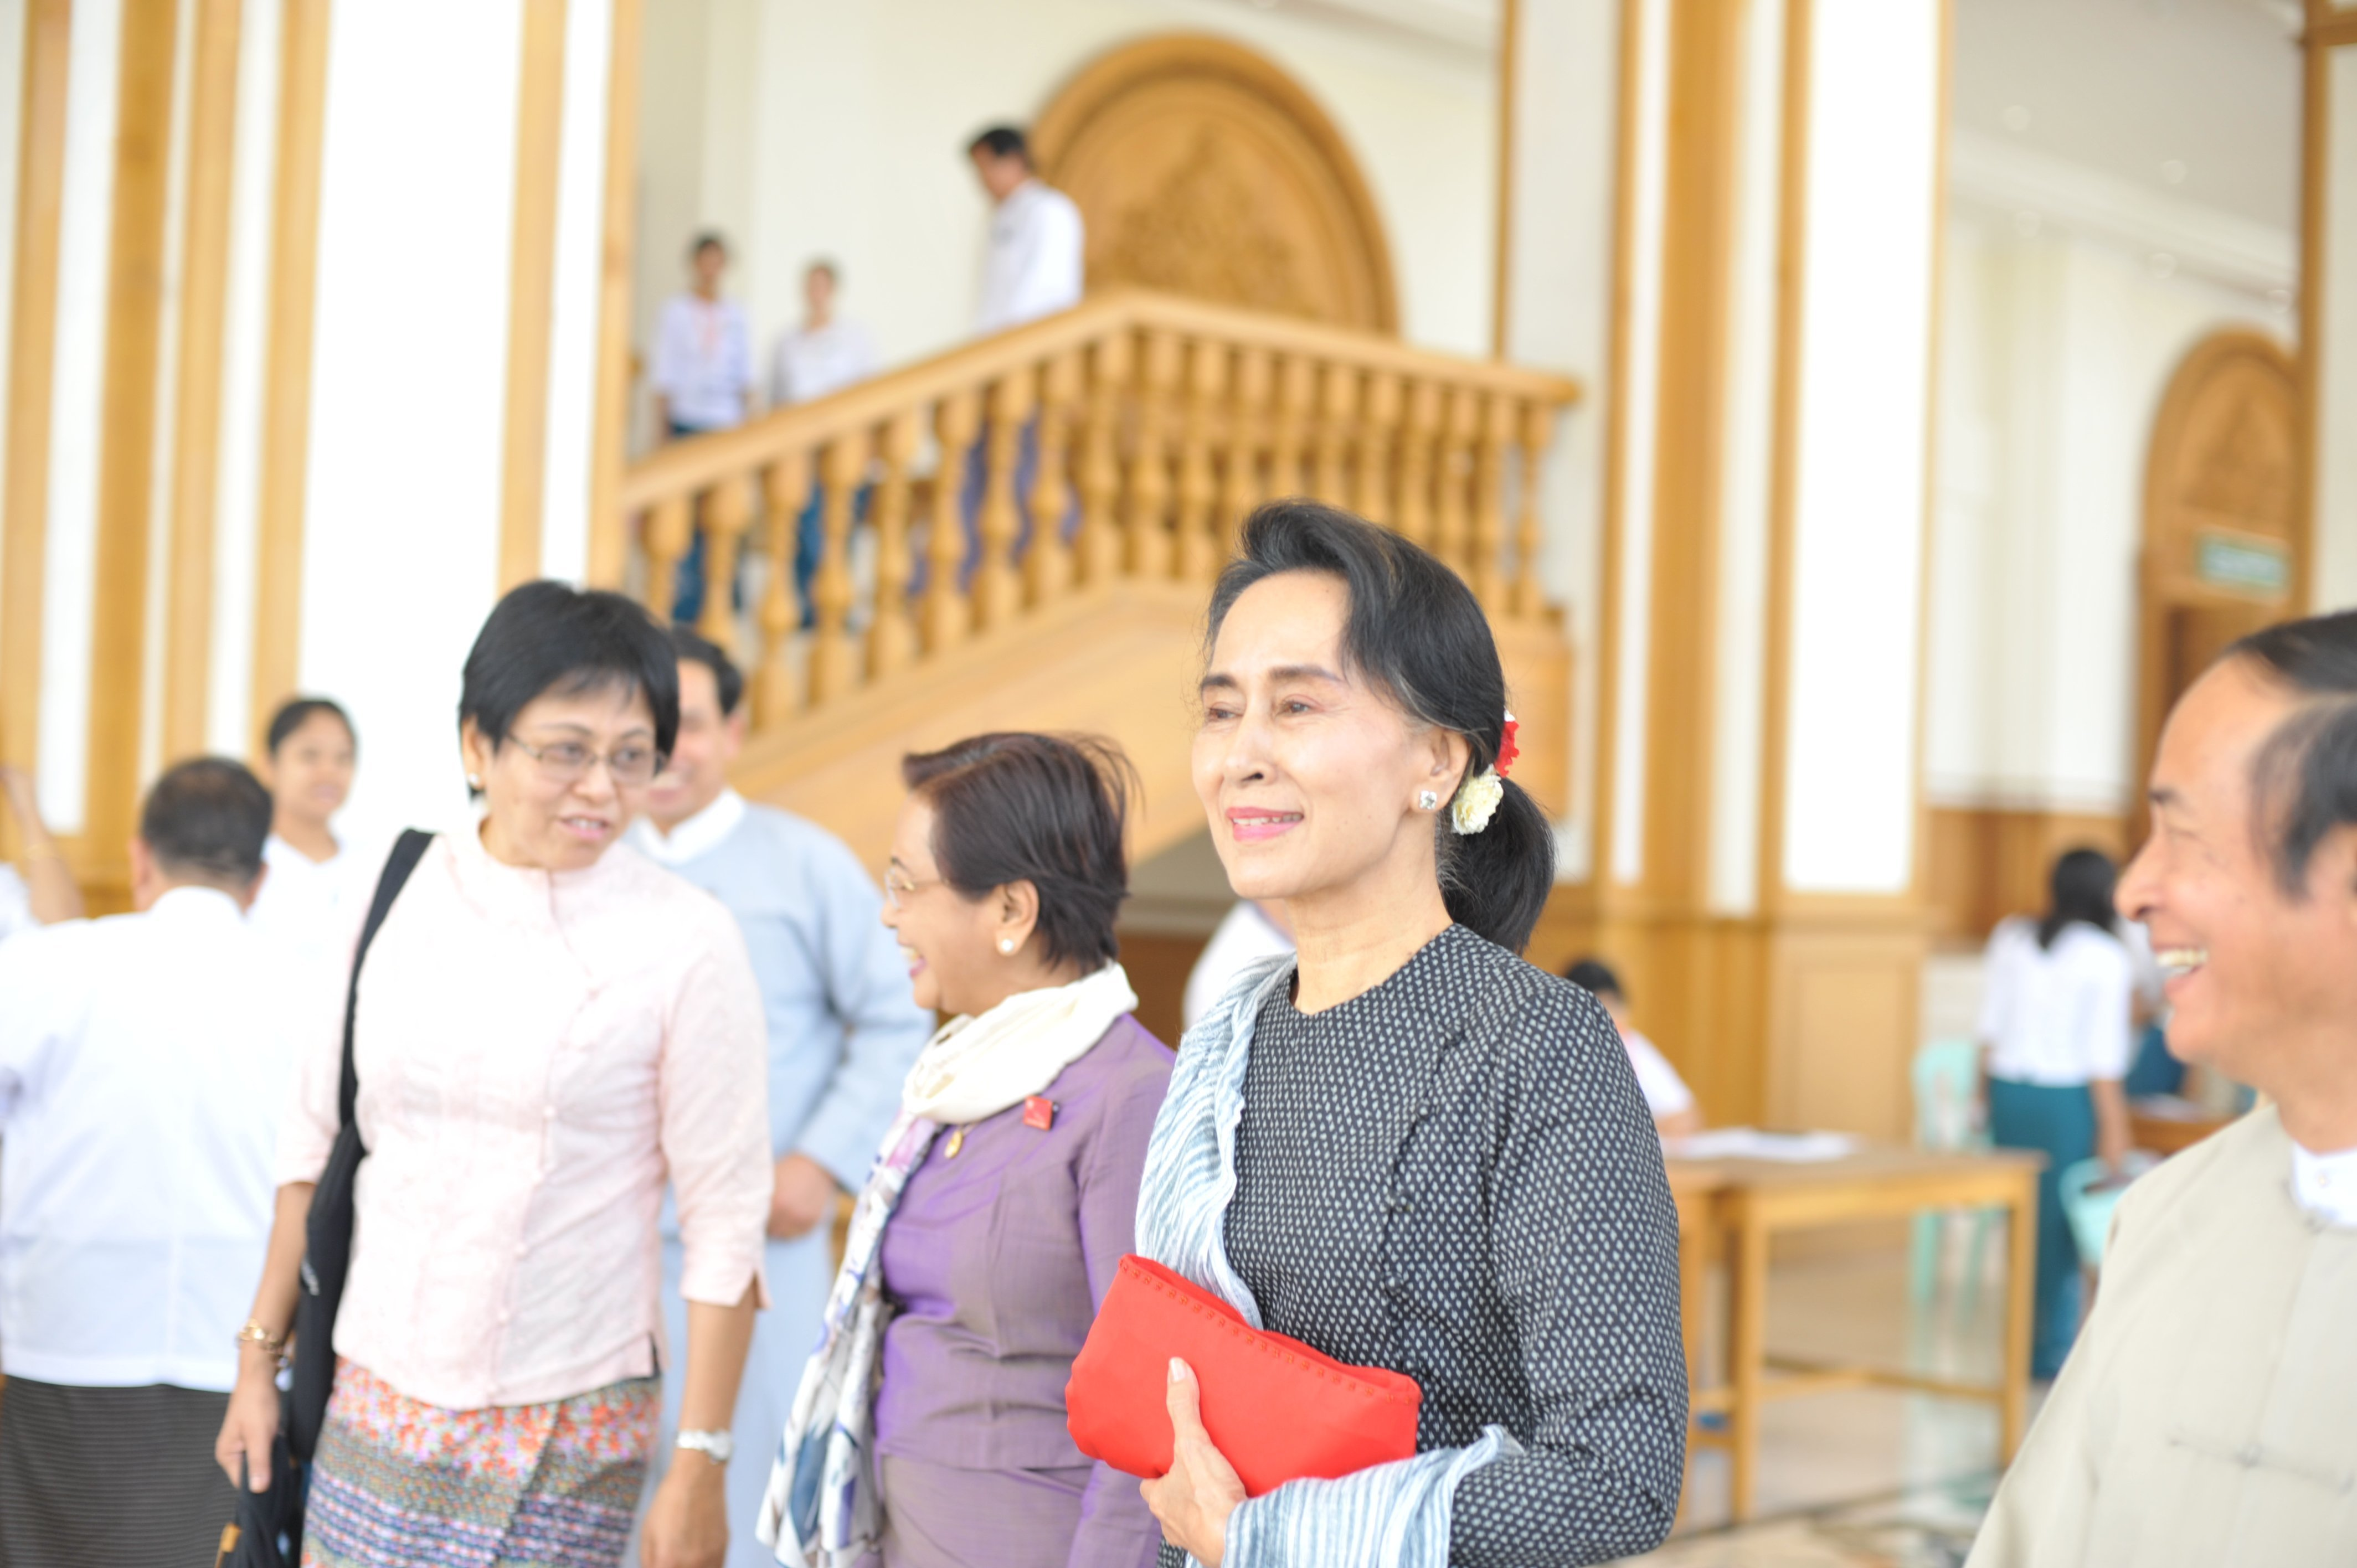 Aung San Suu Kyi's attends a Myanmar parliament meeting on April 8, 2015.